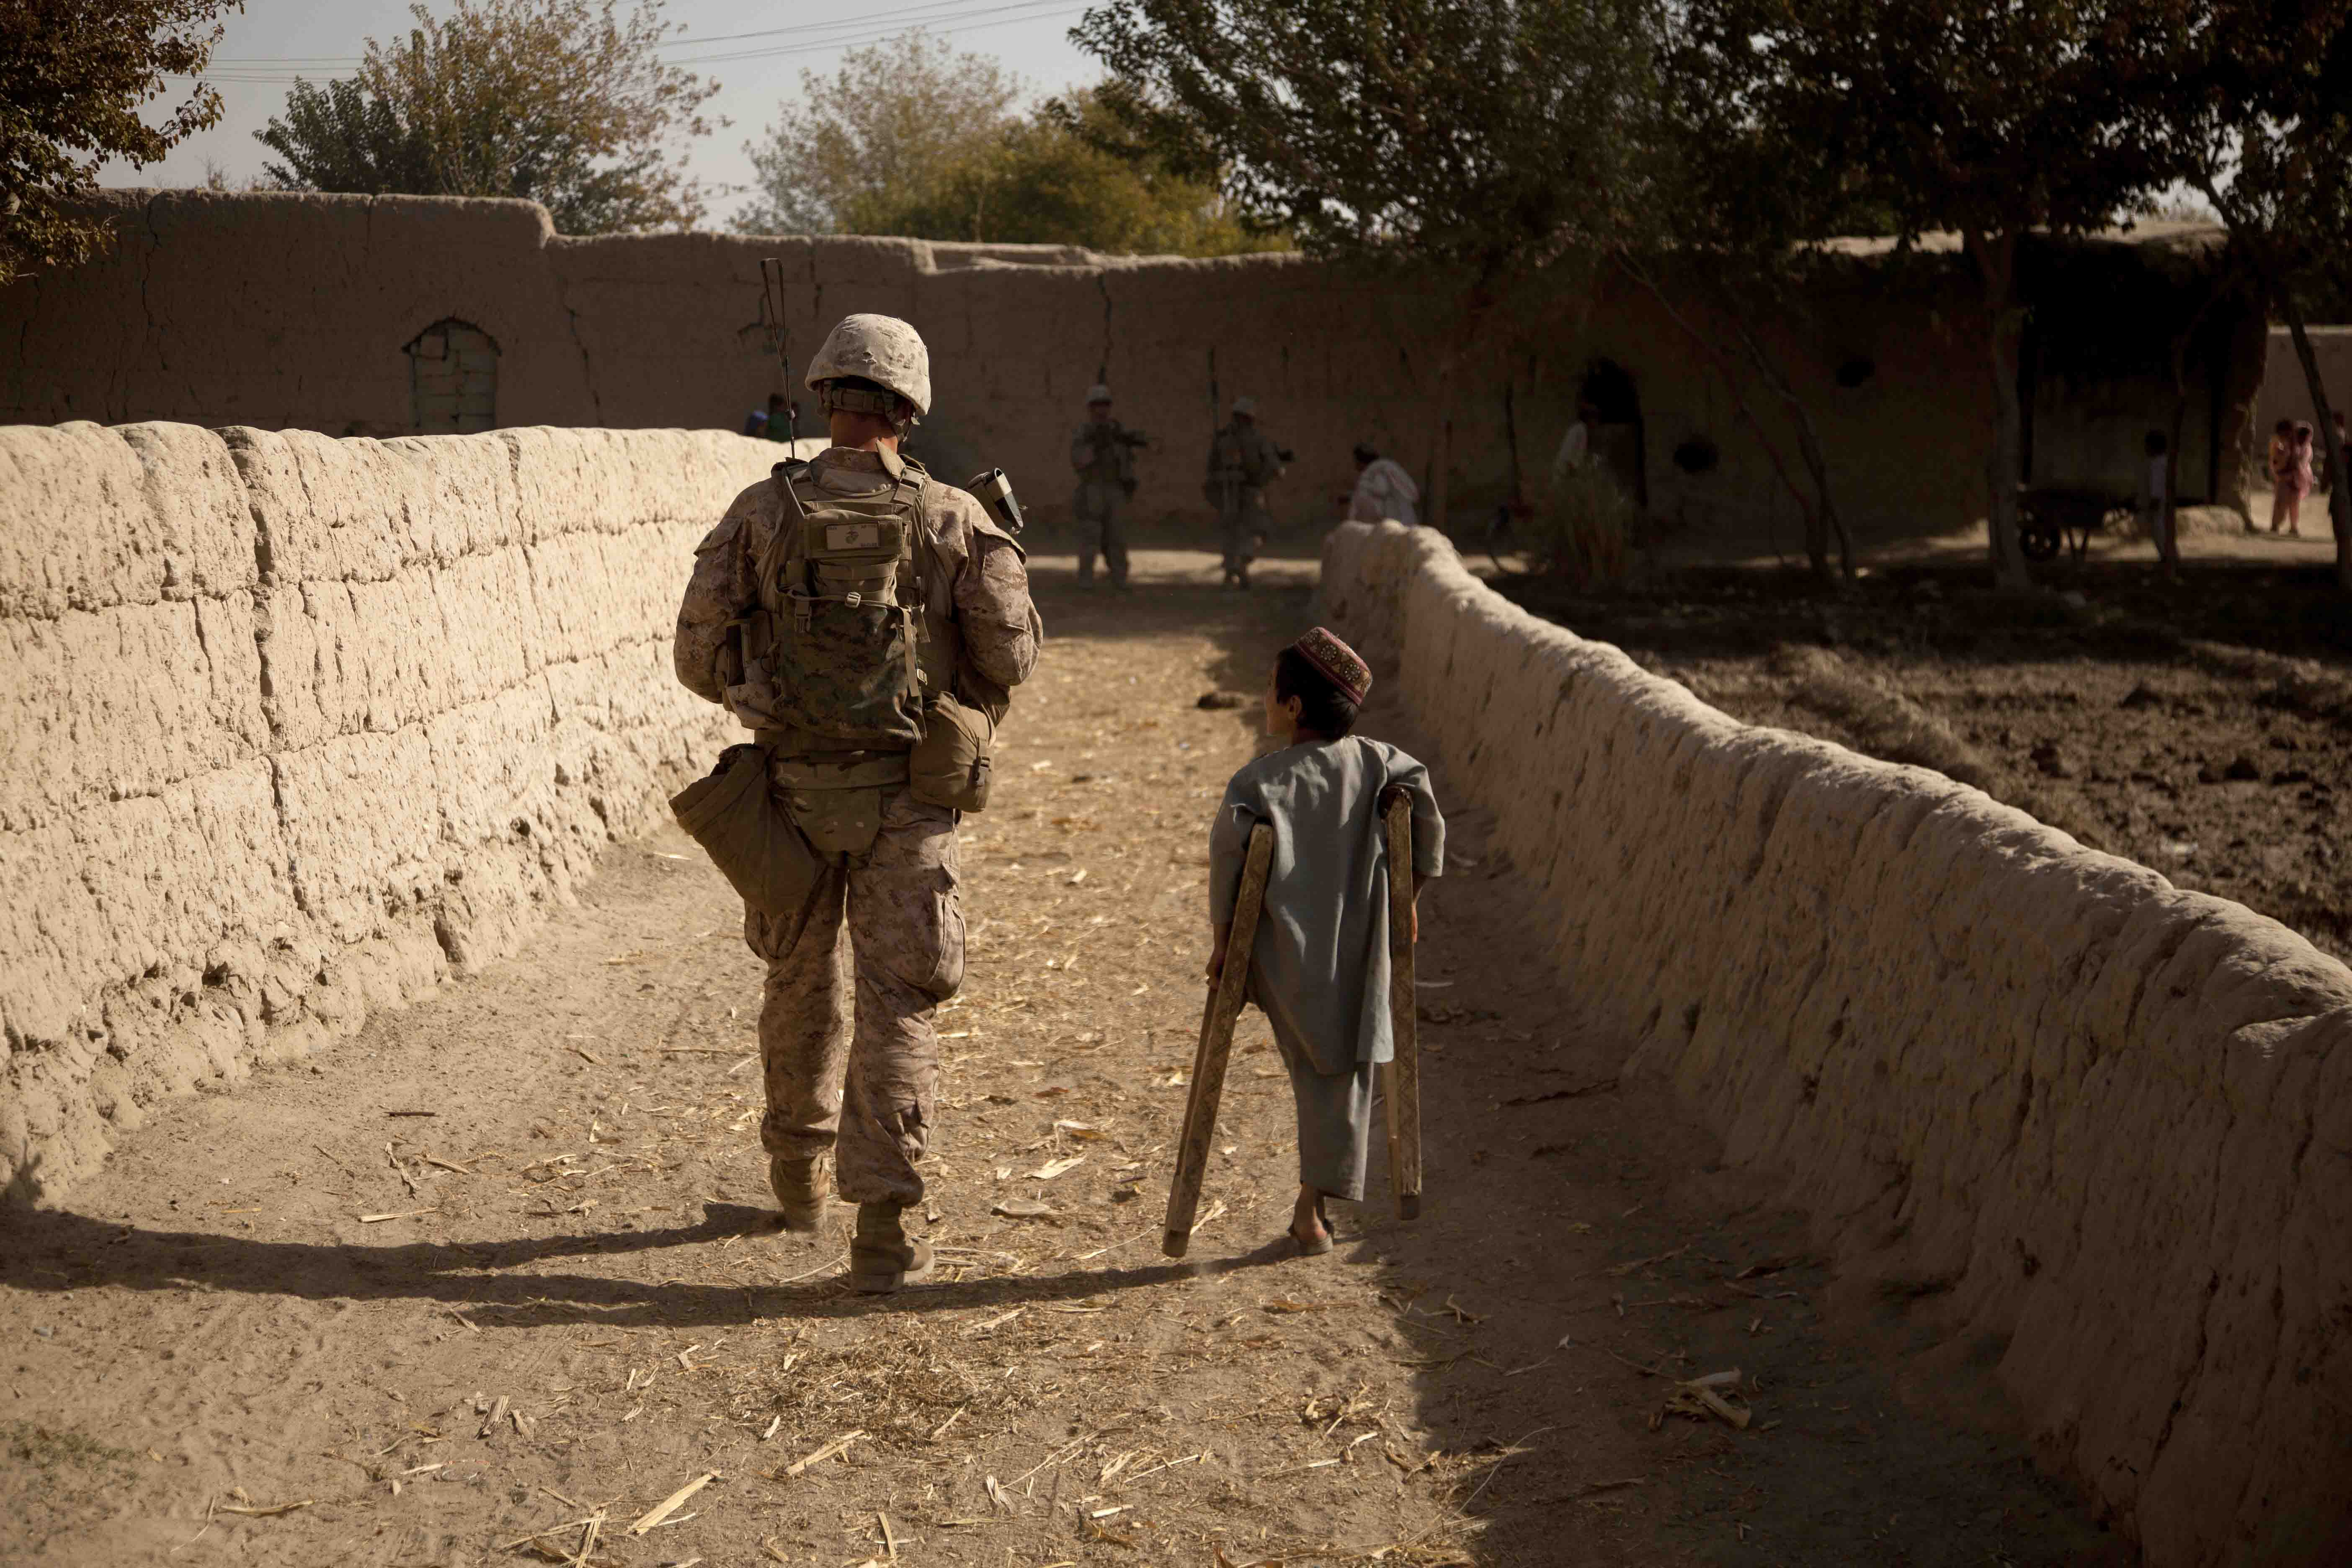 India Company's Cpl Jacob Marler patrols through the Southern Green Zone alongside one of the many Afghan children caught in the struggle between the Marines and the Taliban. (U.S. Marine Corps photo by LCpl Armando Mendoza)